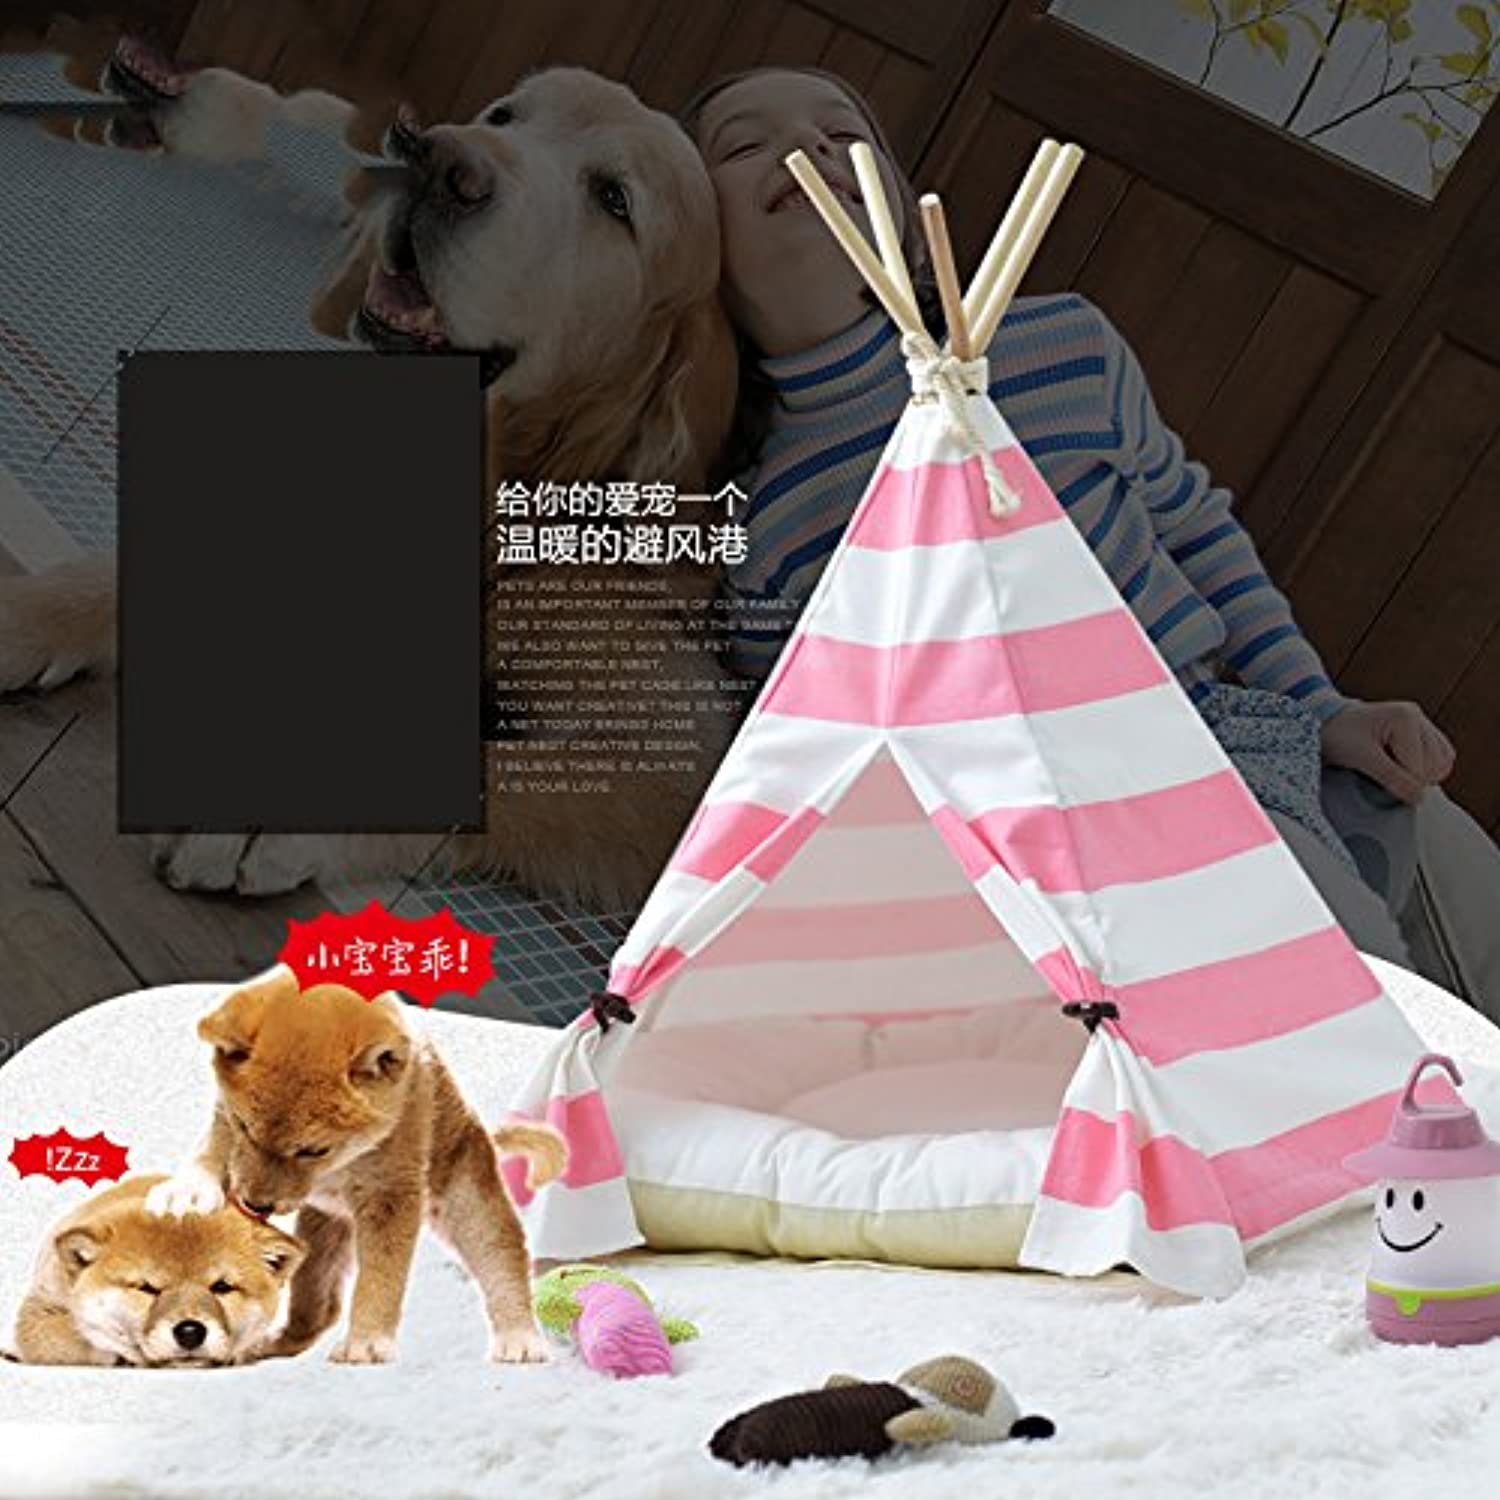 Pet Teepee Dog & Cat Bed  Portable Dog Tents & Pet Houses